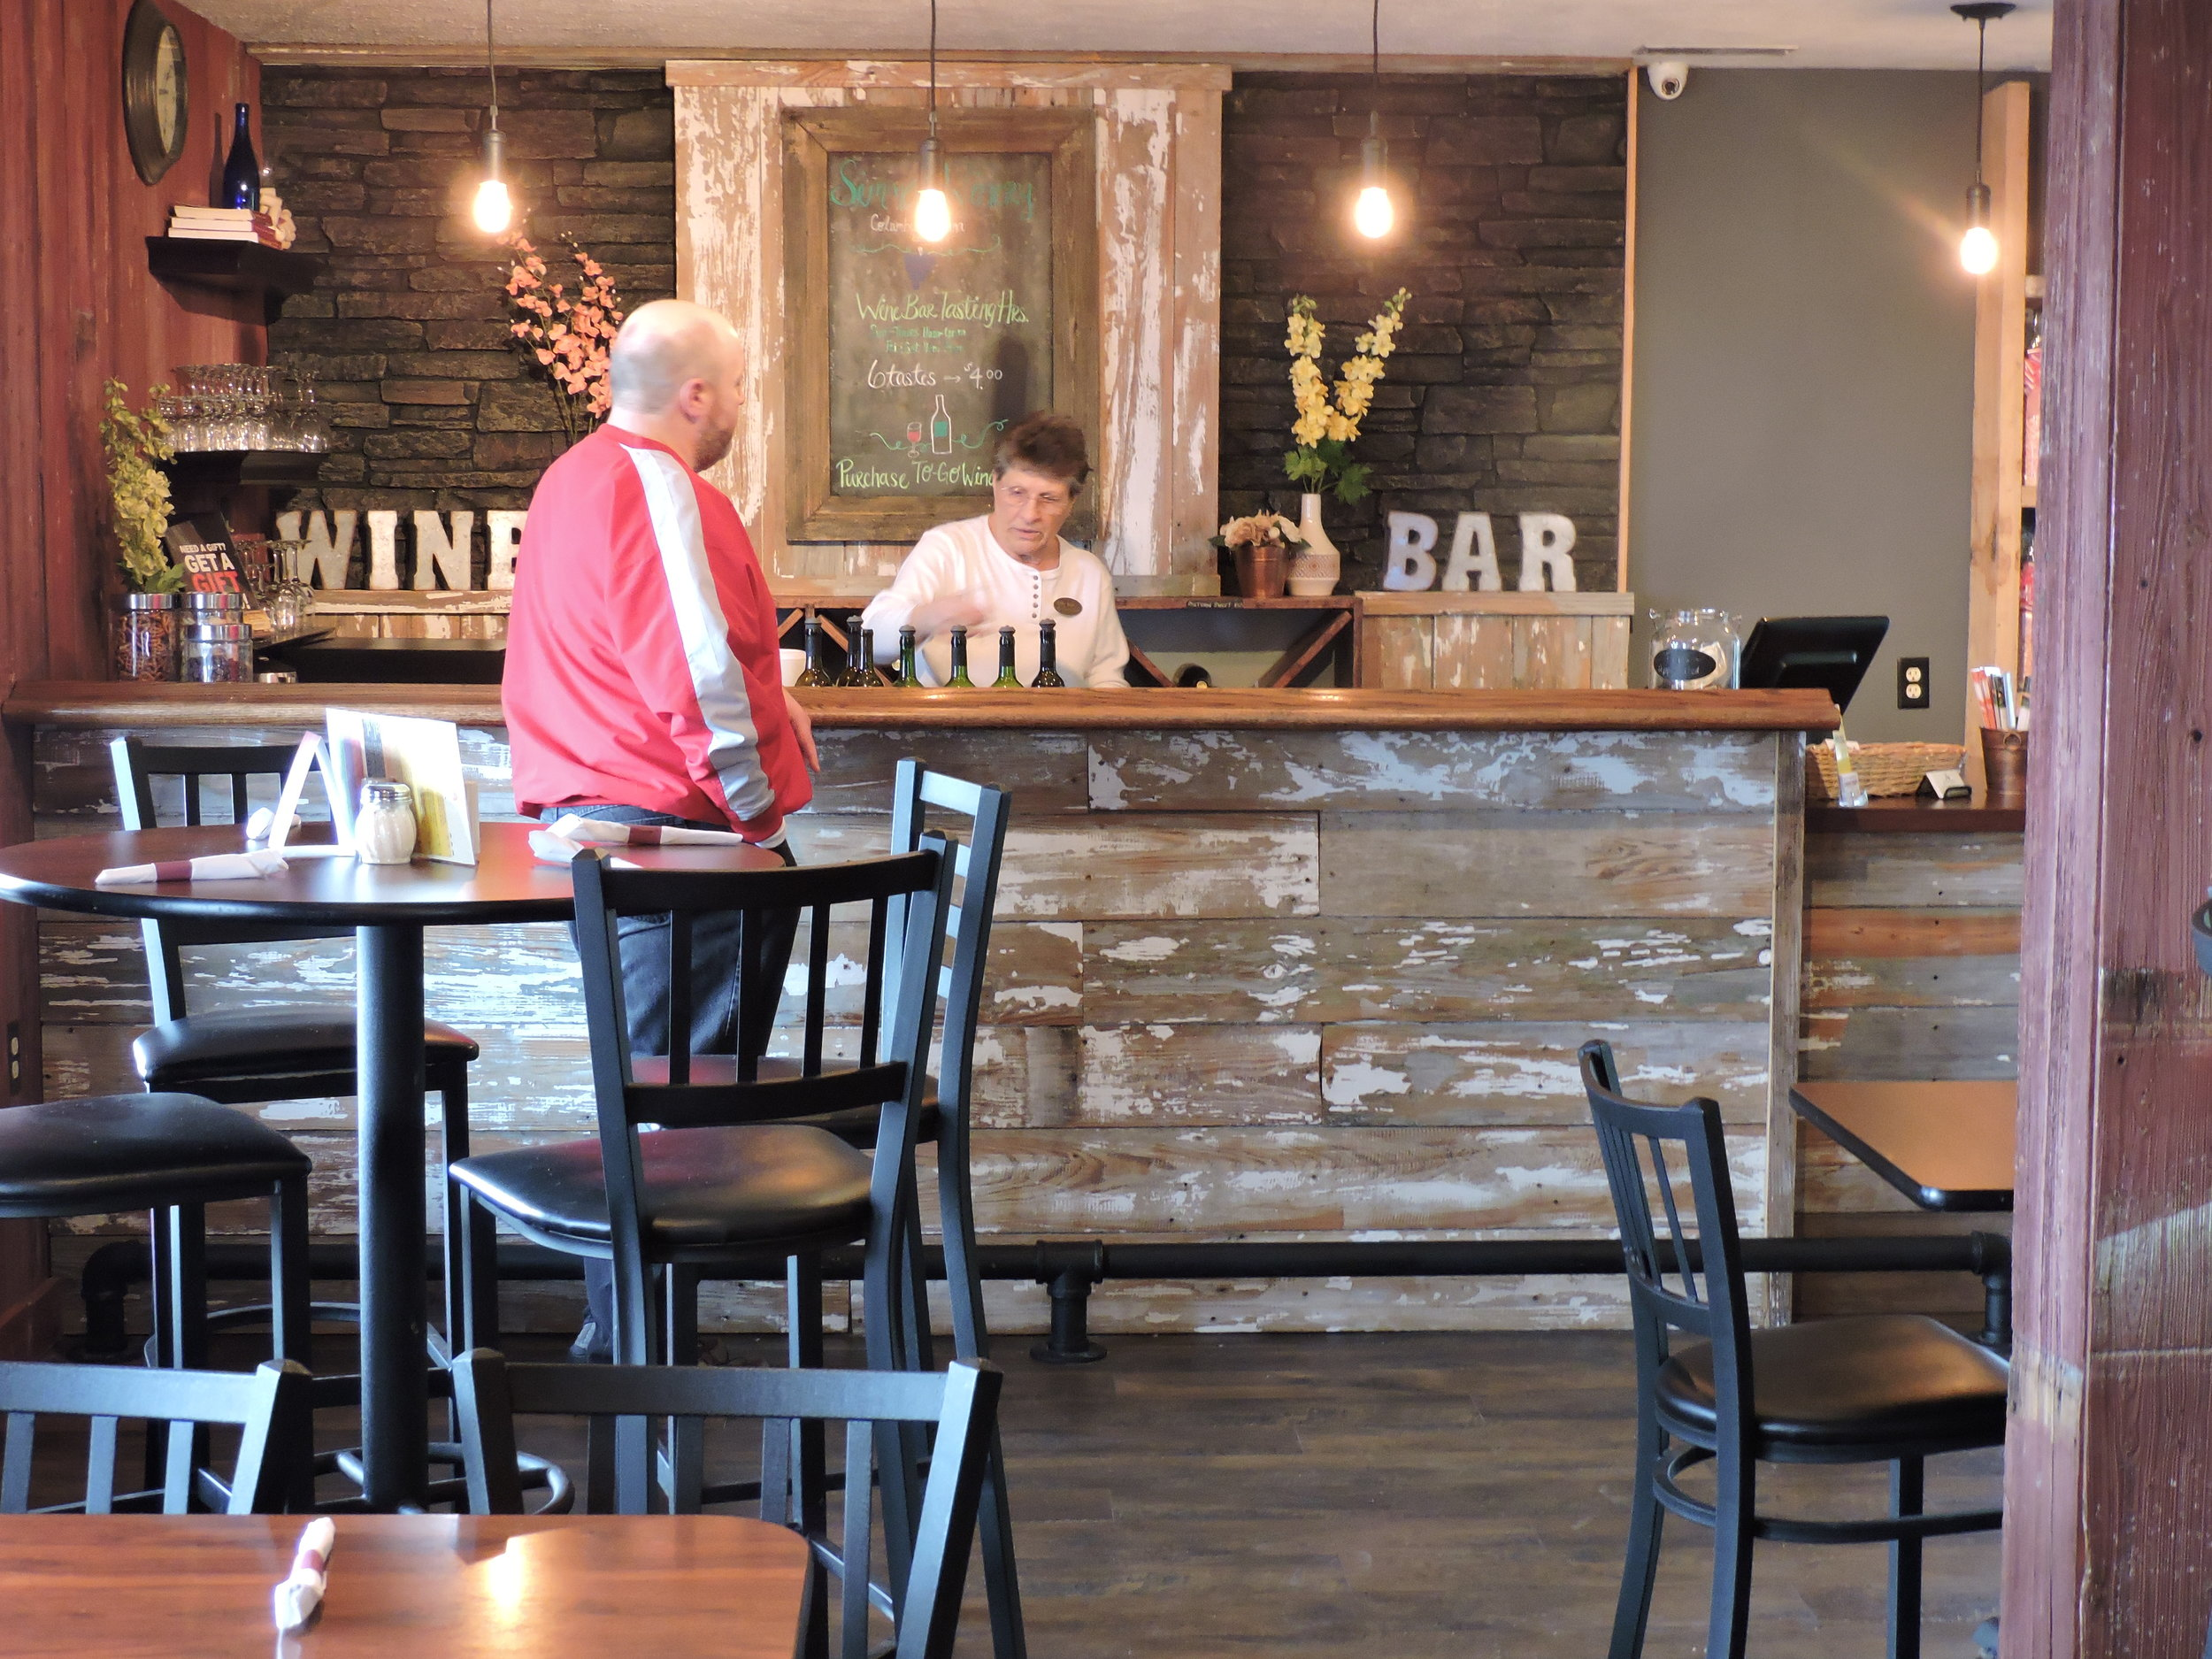 Thrilled to provide reclaimed lumber to Simmon's Winery during their remodel!